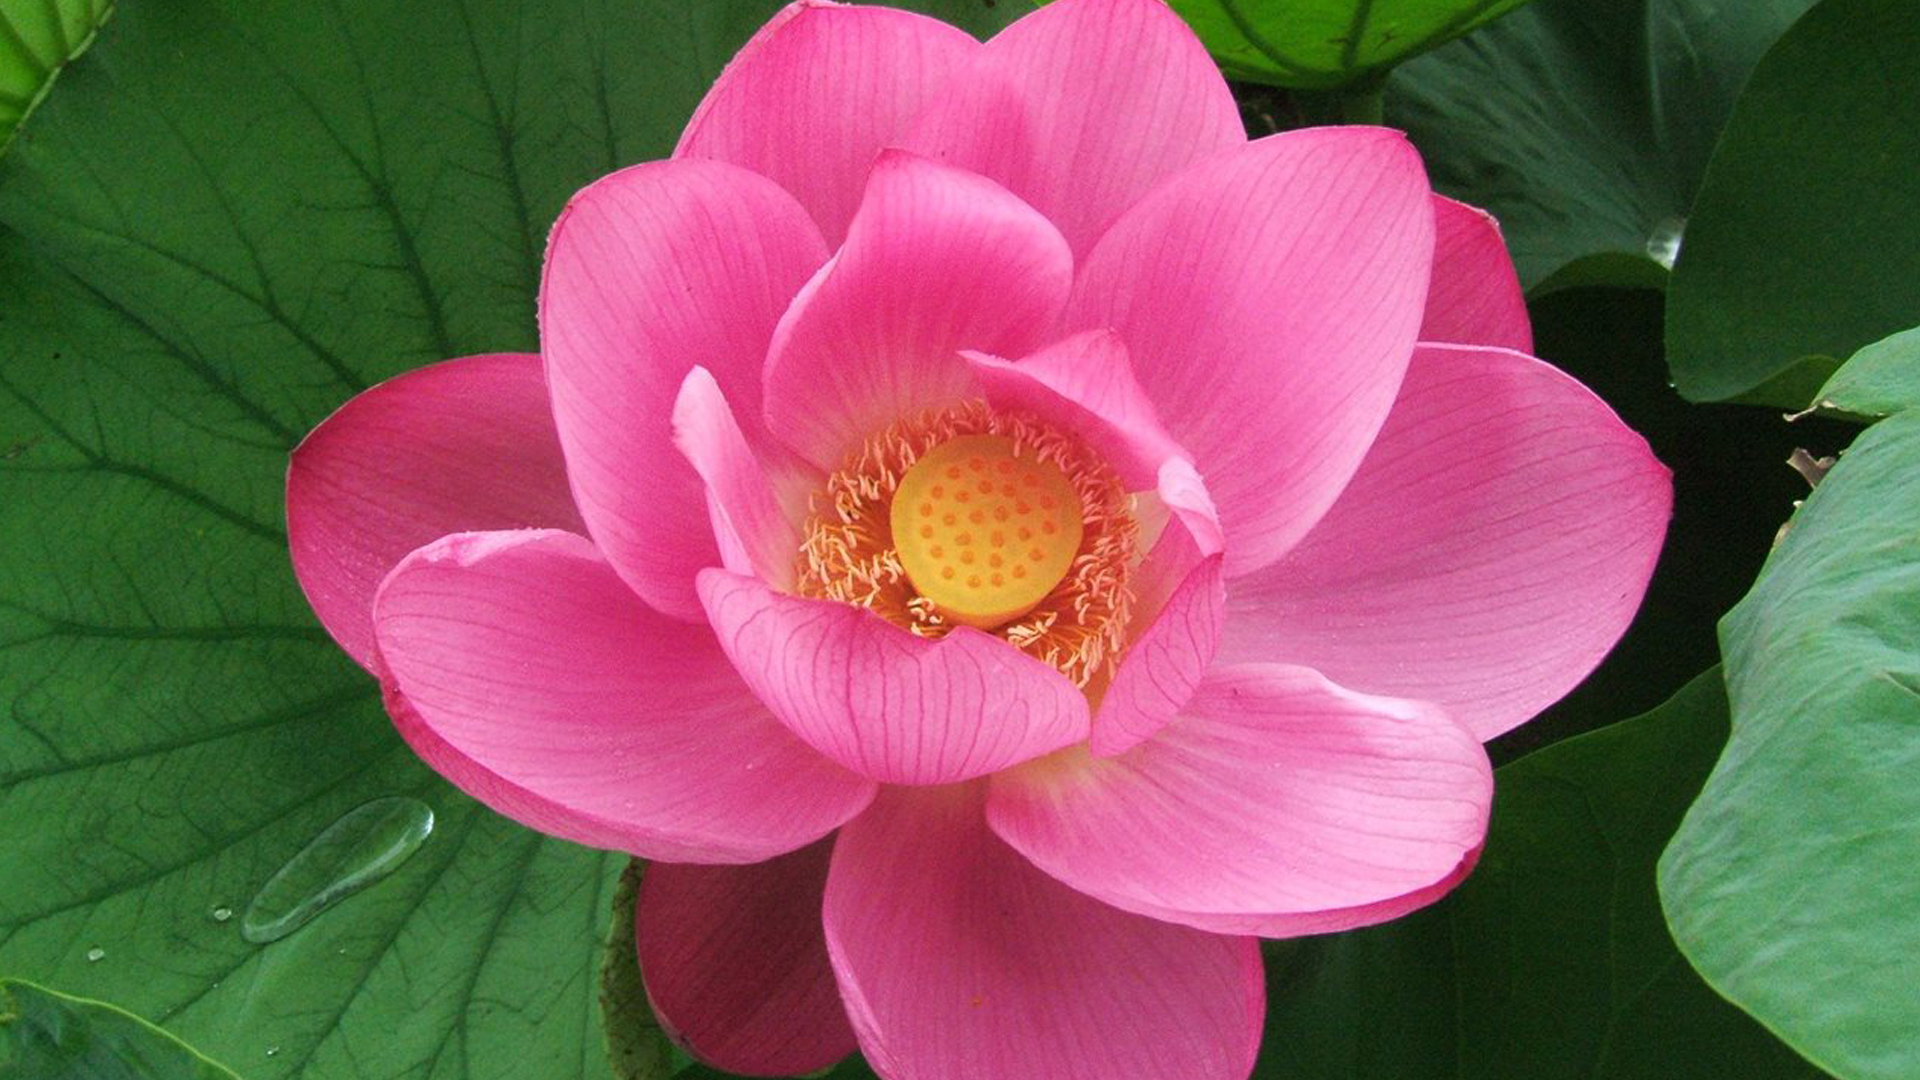 Beautiful lotus flower high resolution wallpaper hd wallpapers hd close up picture of pink lotus flower for desktop background izmirmasajfo